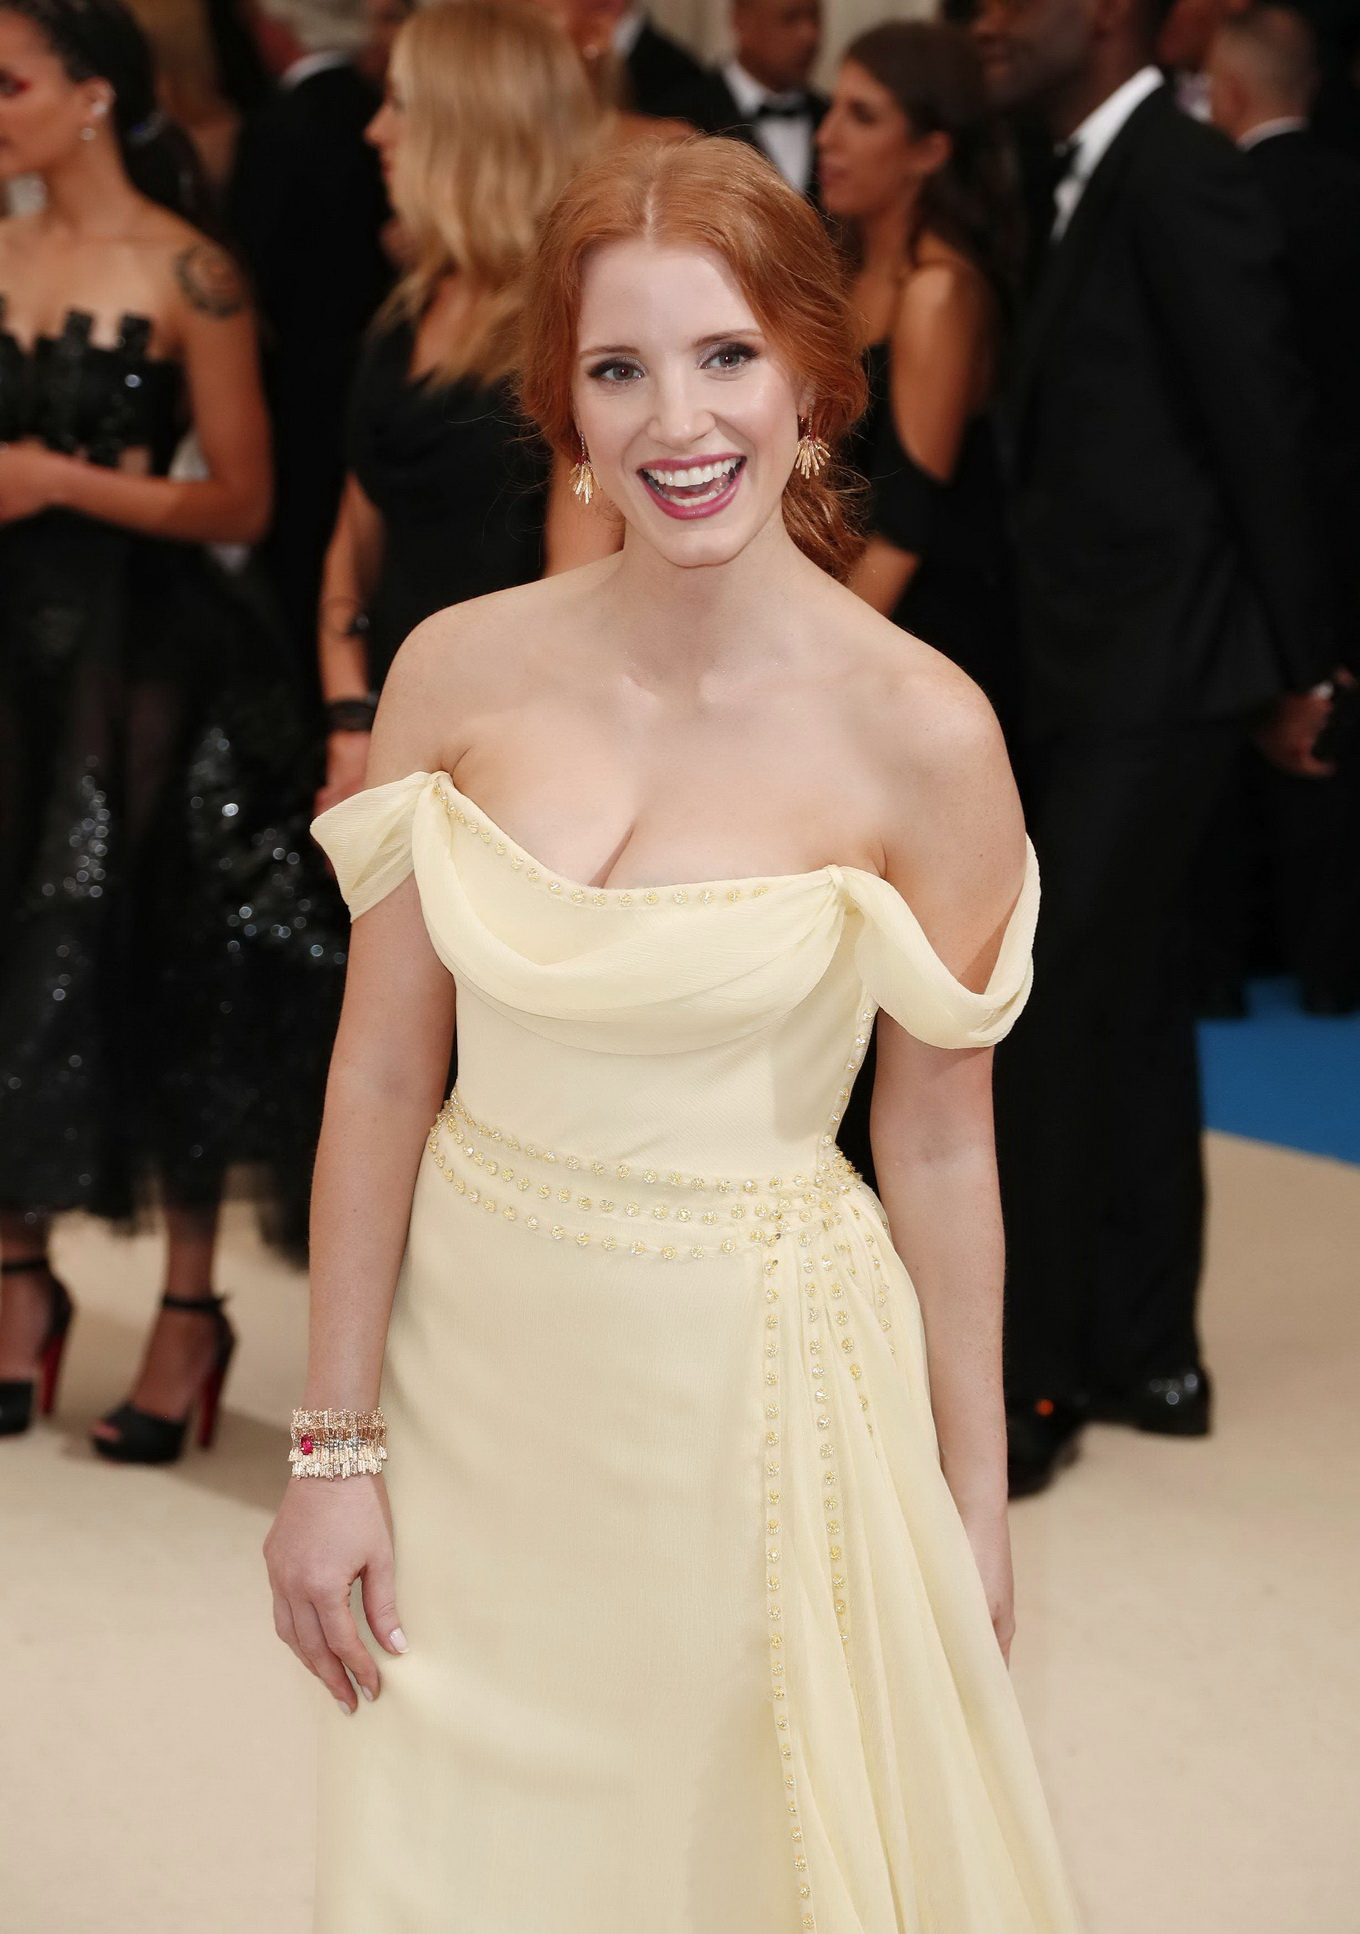 Jessica Chastain showing huge cleavage in a strapless yellow dress at 2017 MET Gala in NYC